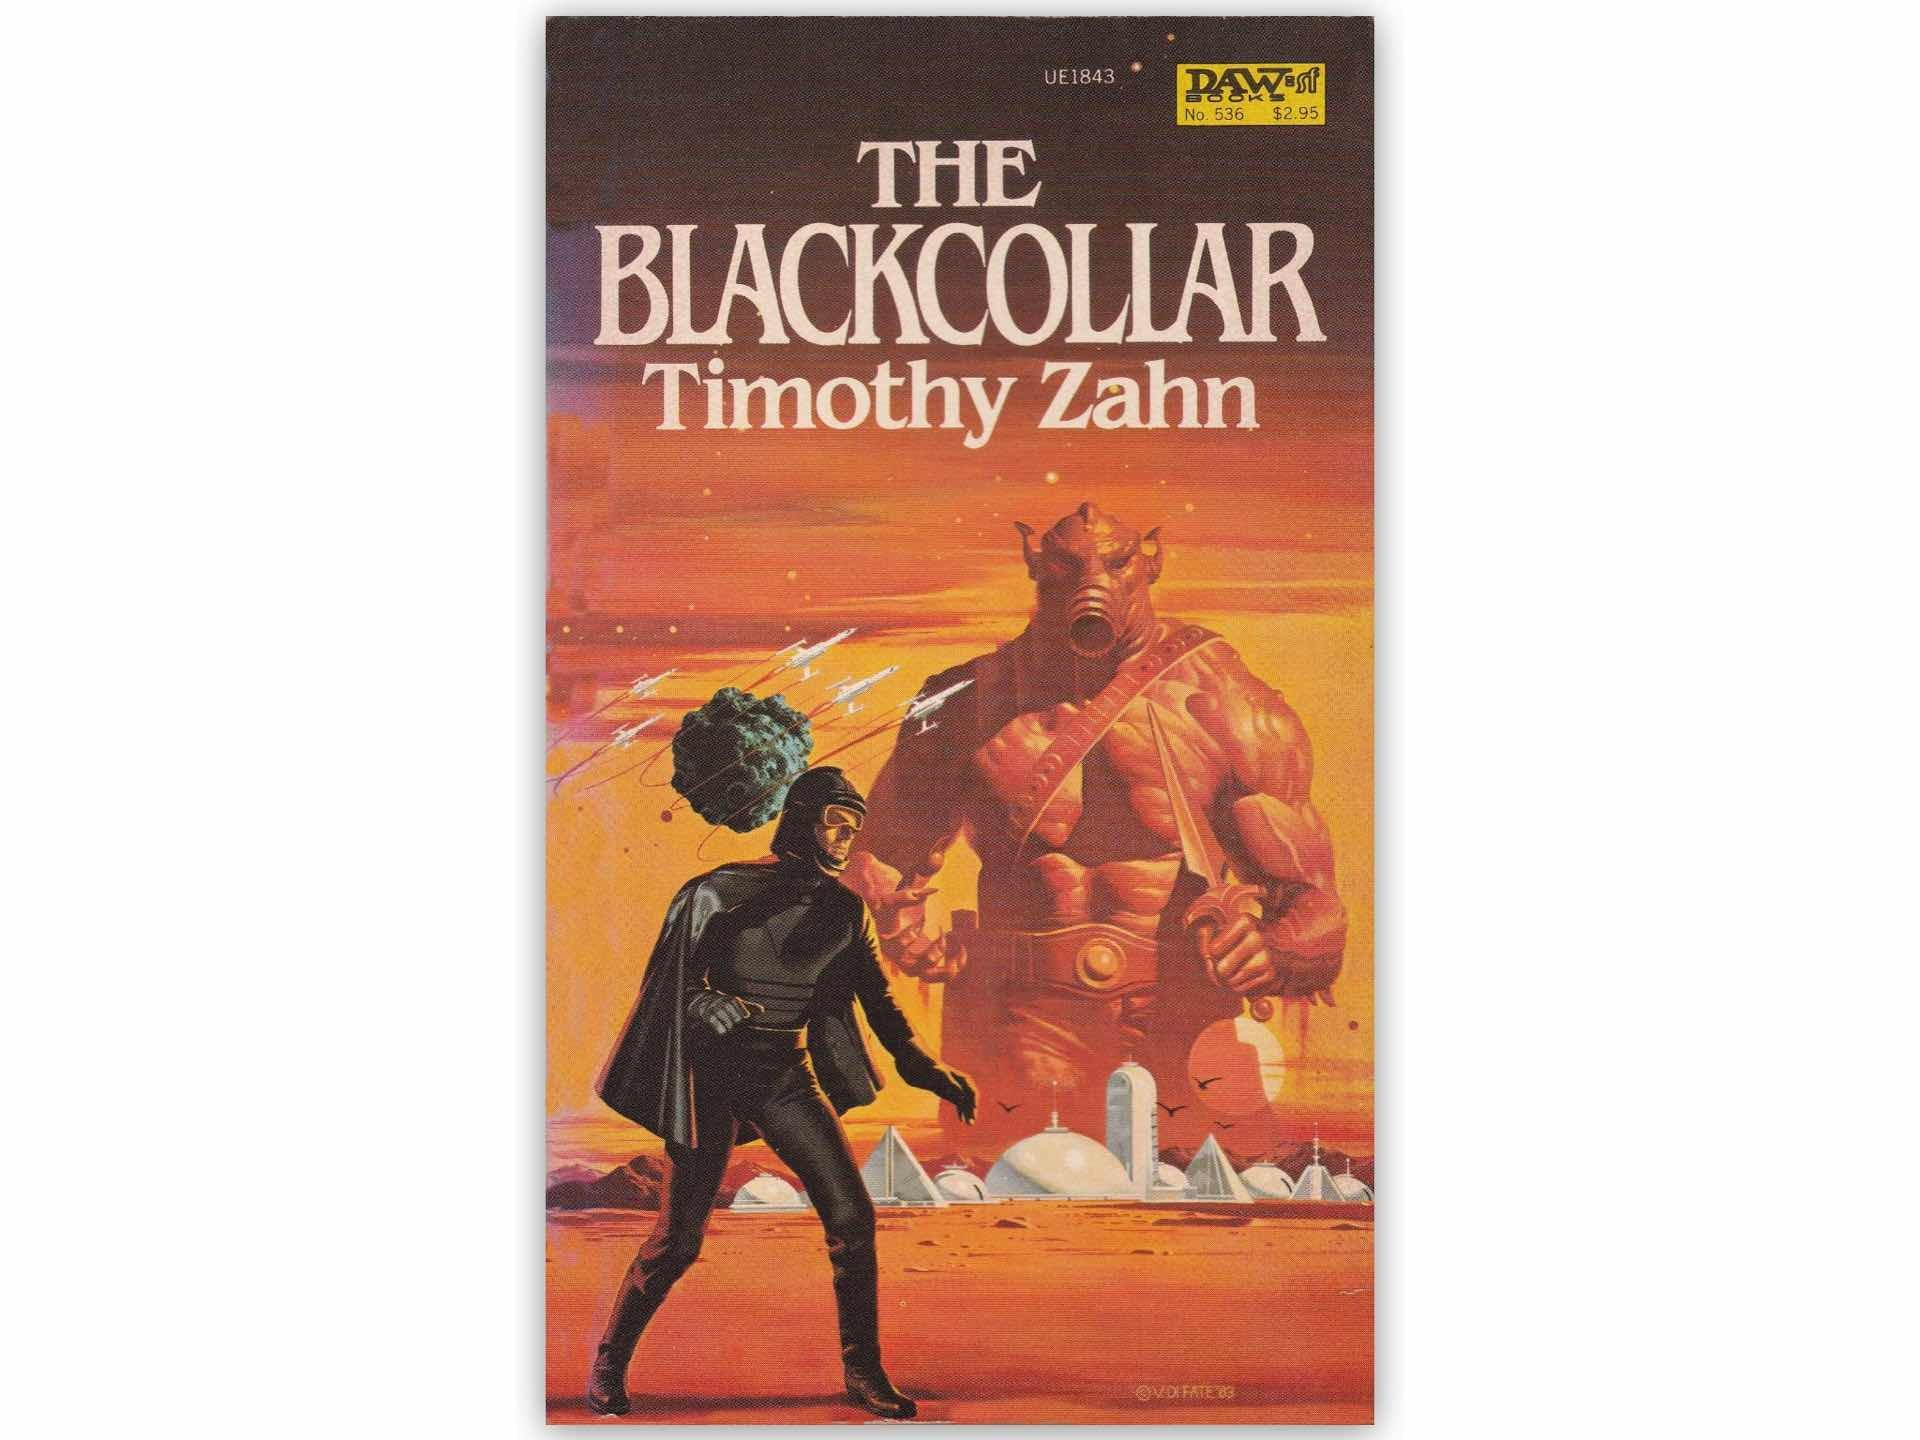 The Blackcollar series by Timothy Zahn.